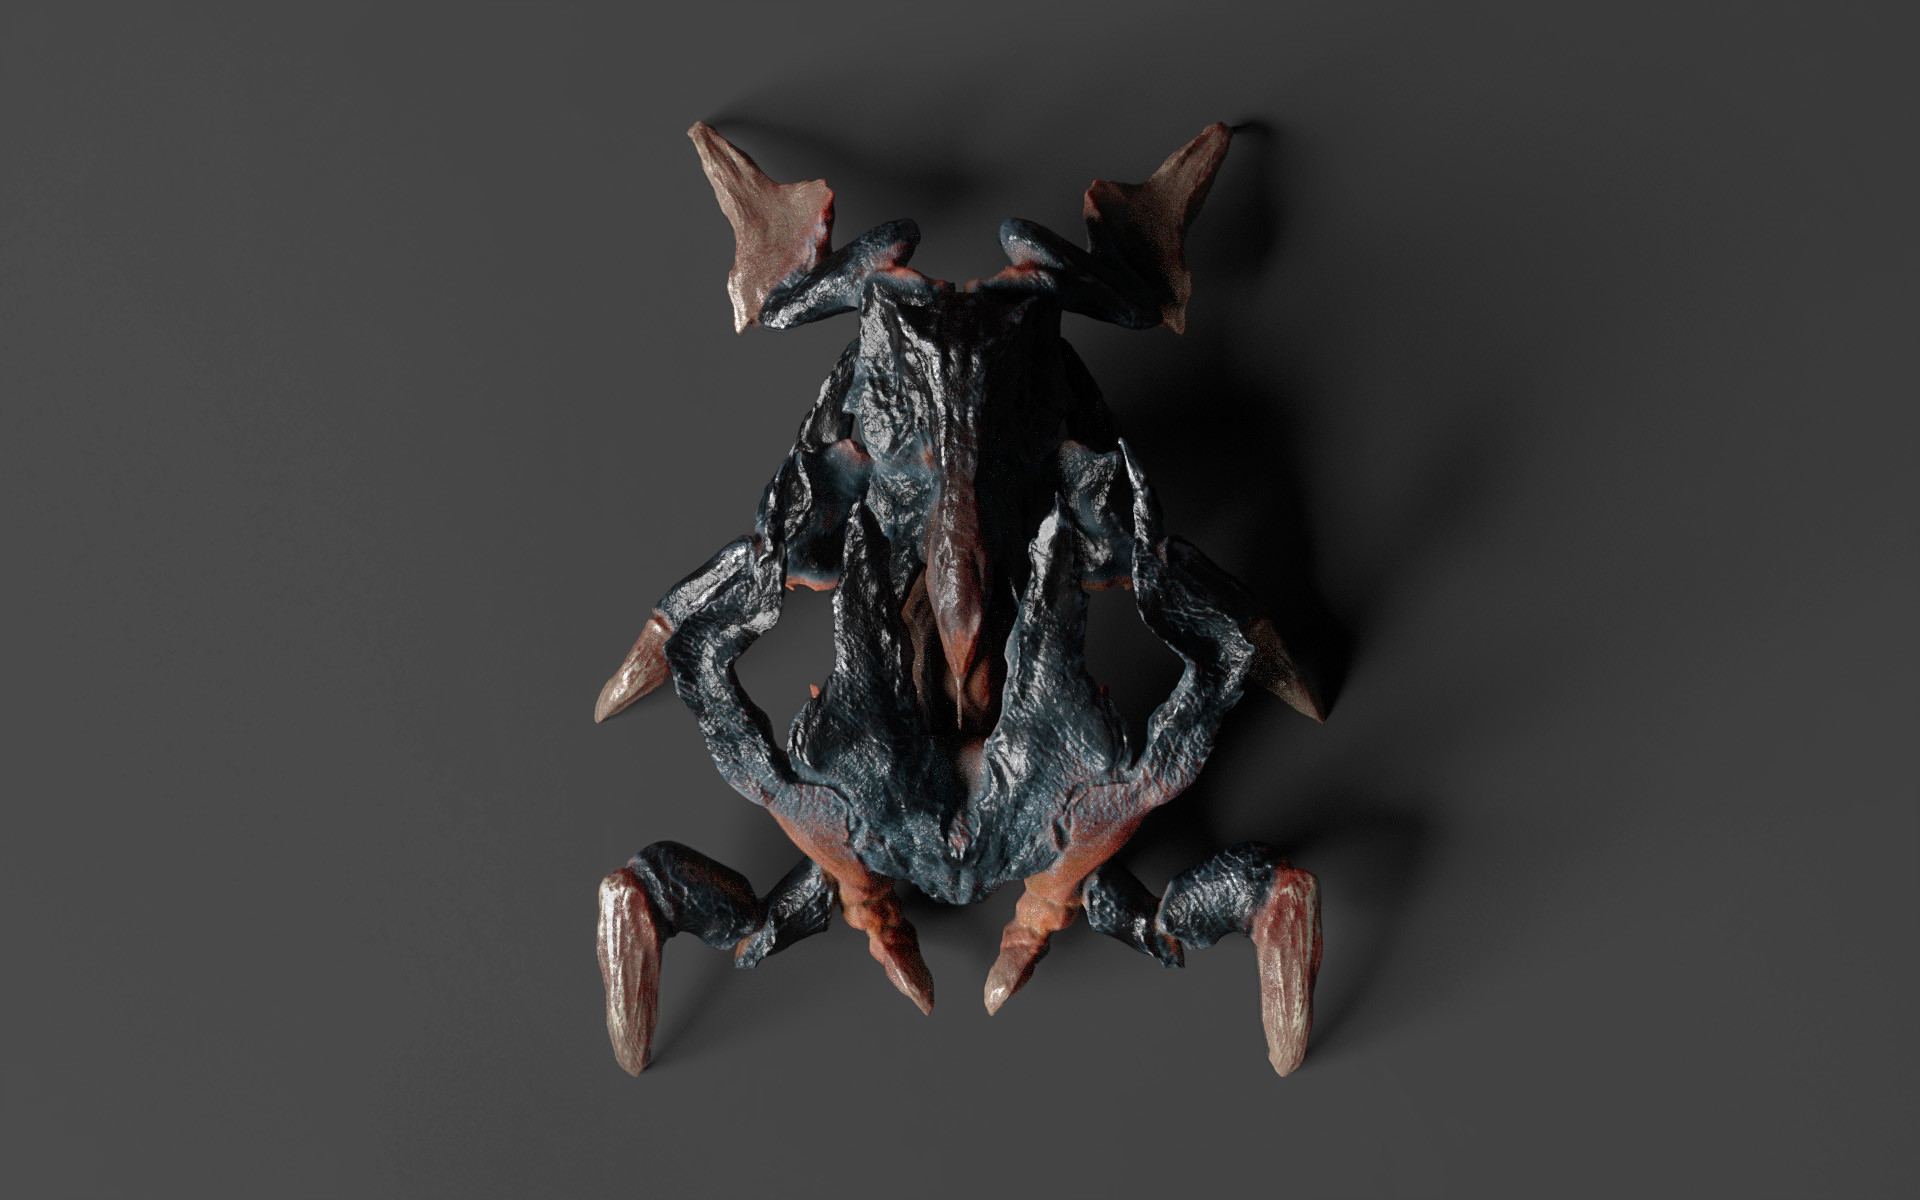 ArtStation - Crab Inspired Creature - Sculptris Pro Test